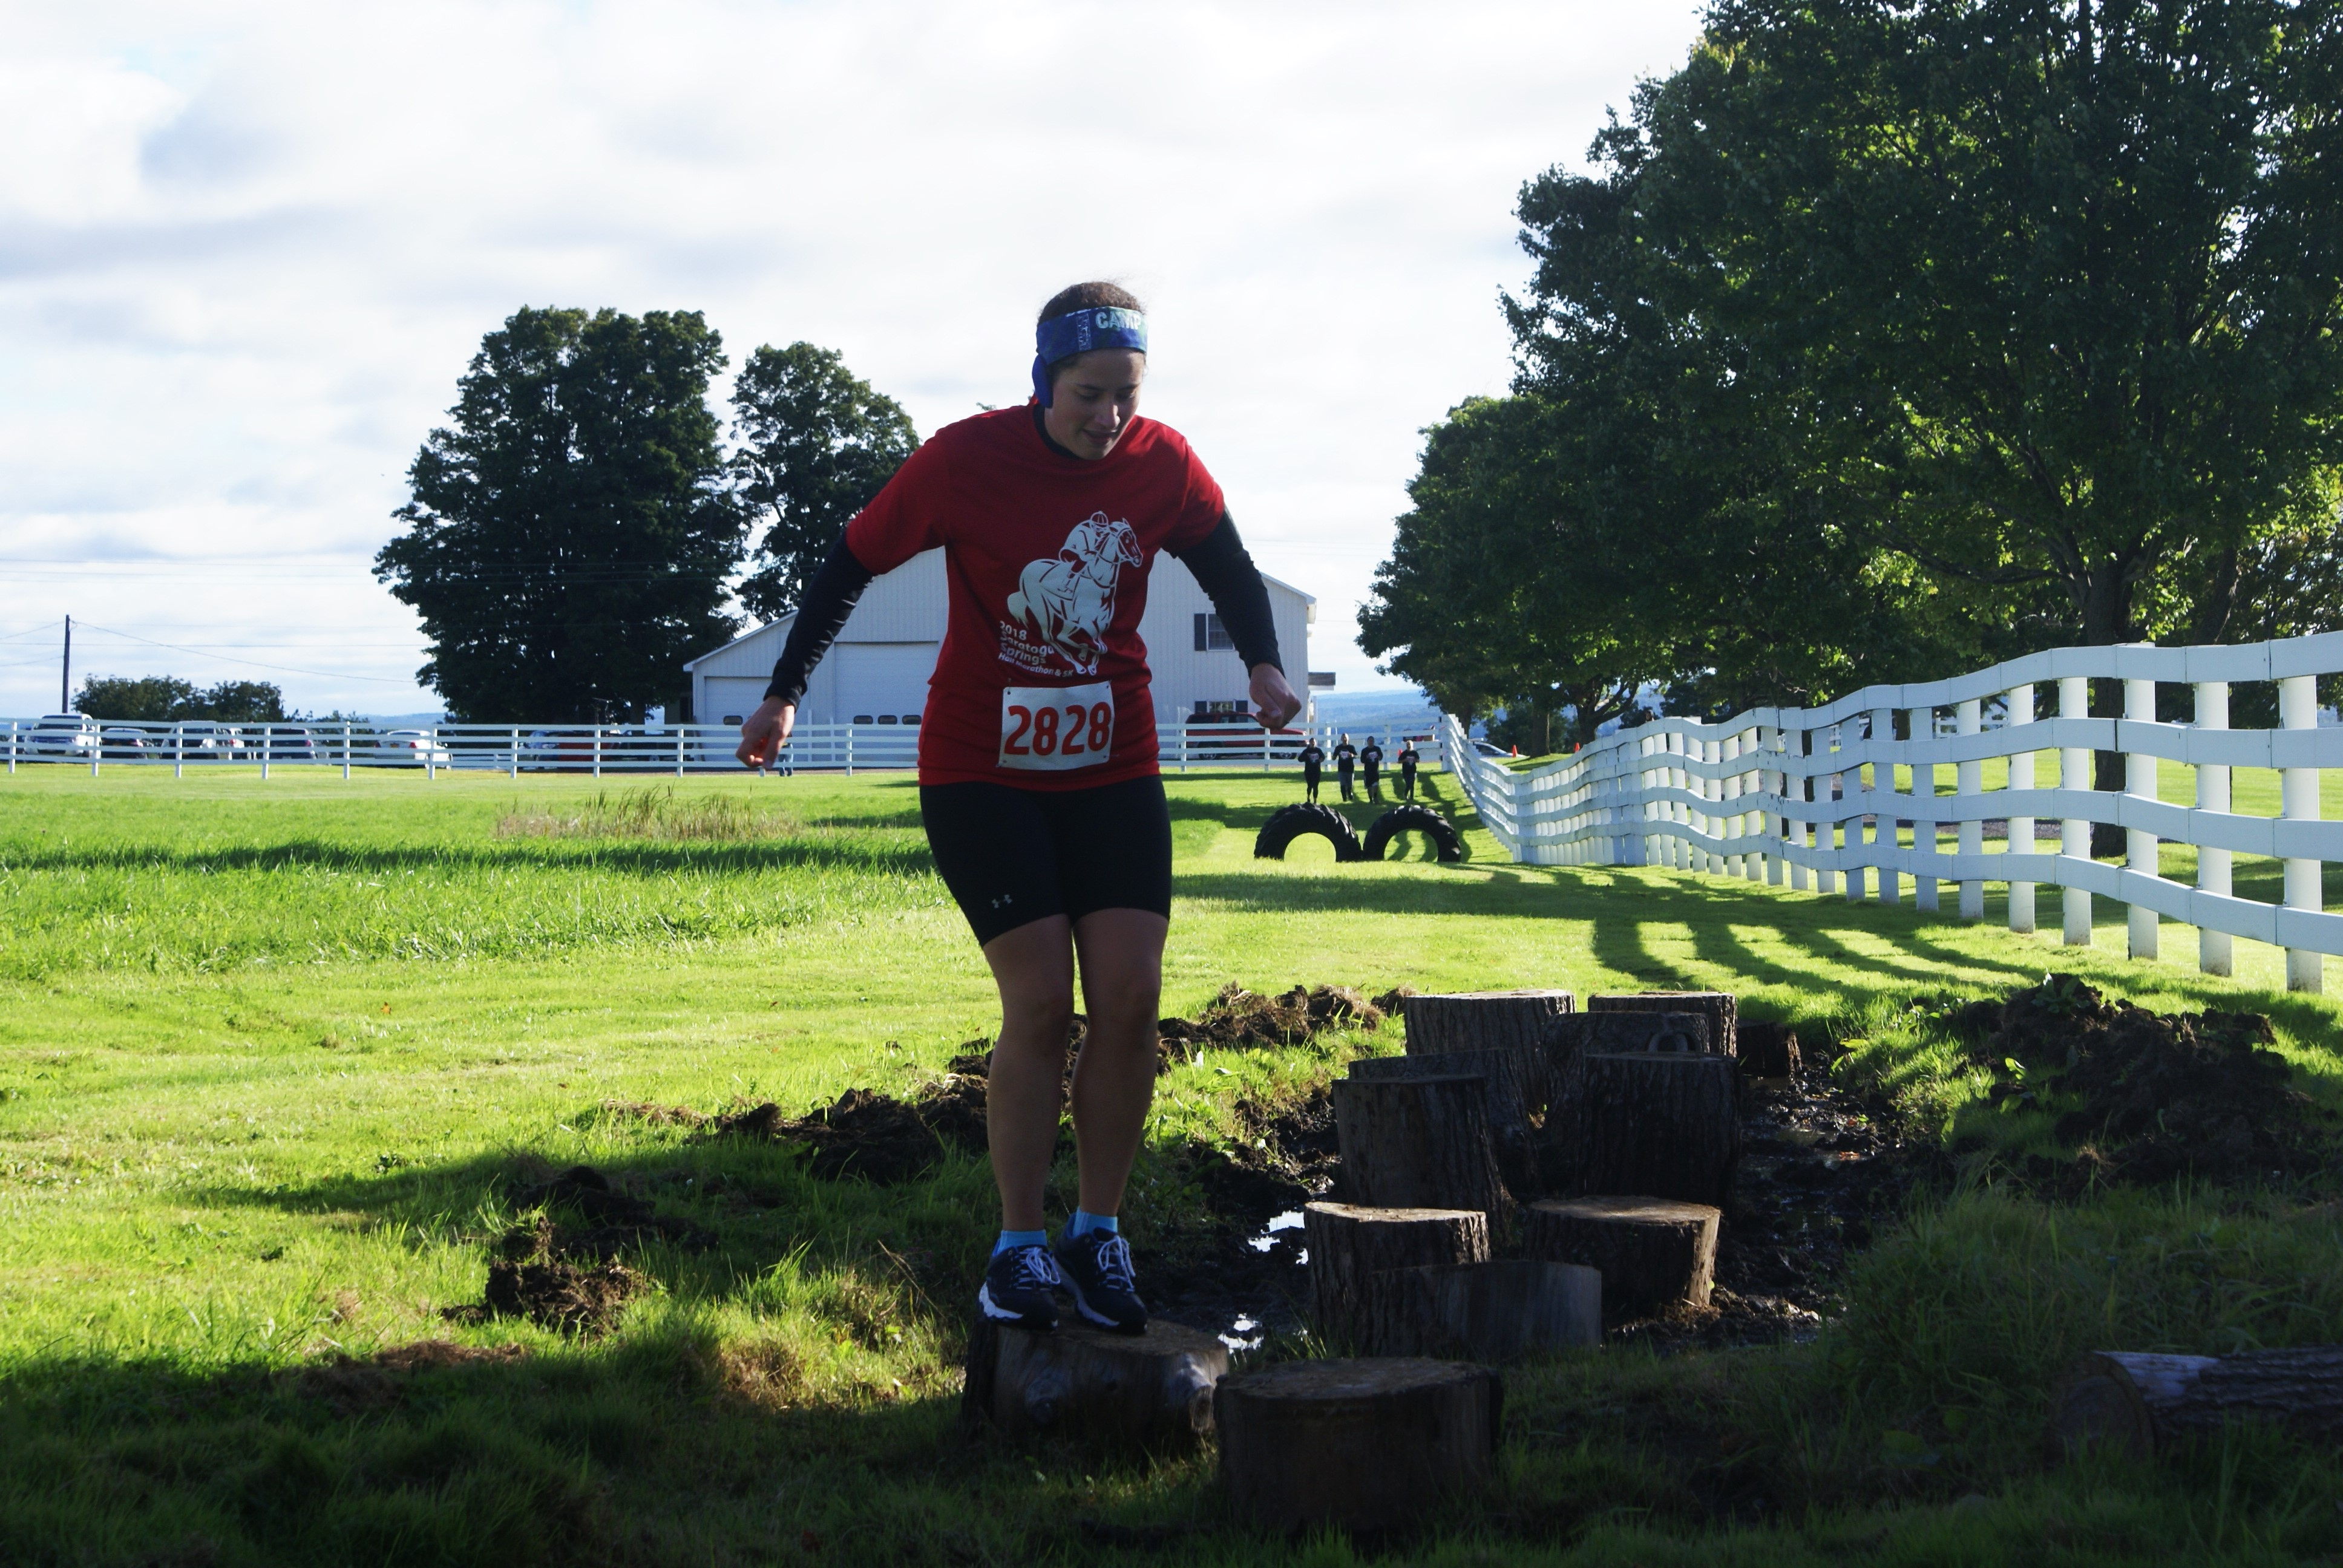 A participant of the Udderly Rugged Run at Maple Ridge Center hops from stump to stump in a muddy pit.